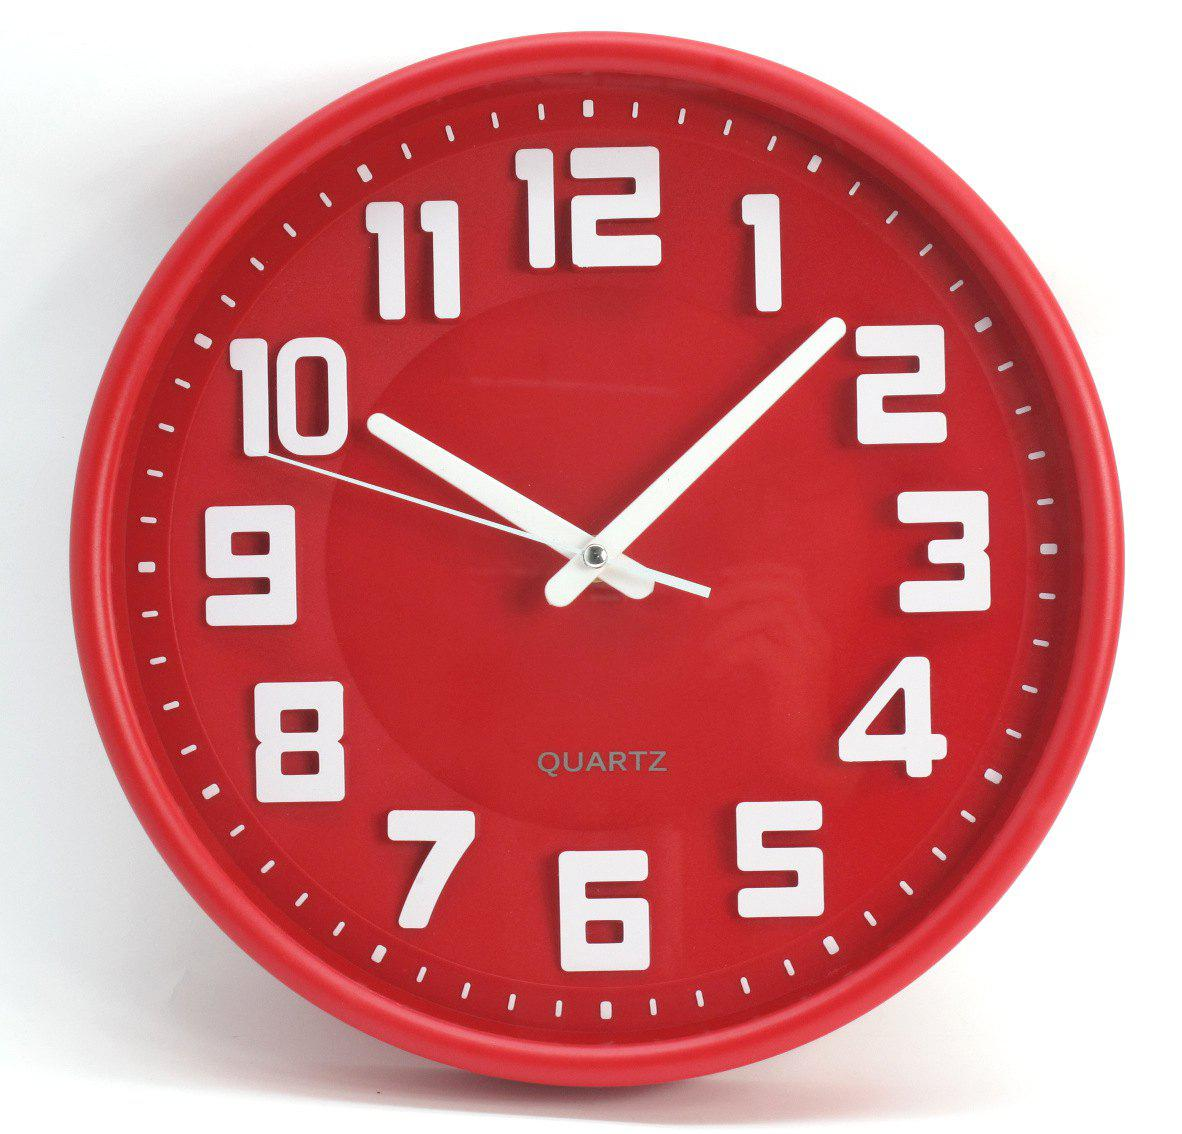 Cheap 12 inch Simple Modern Stereo Digital Wall Clock for Living Room / Bedroom